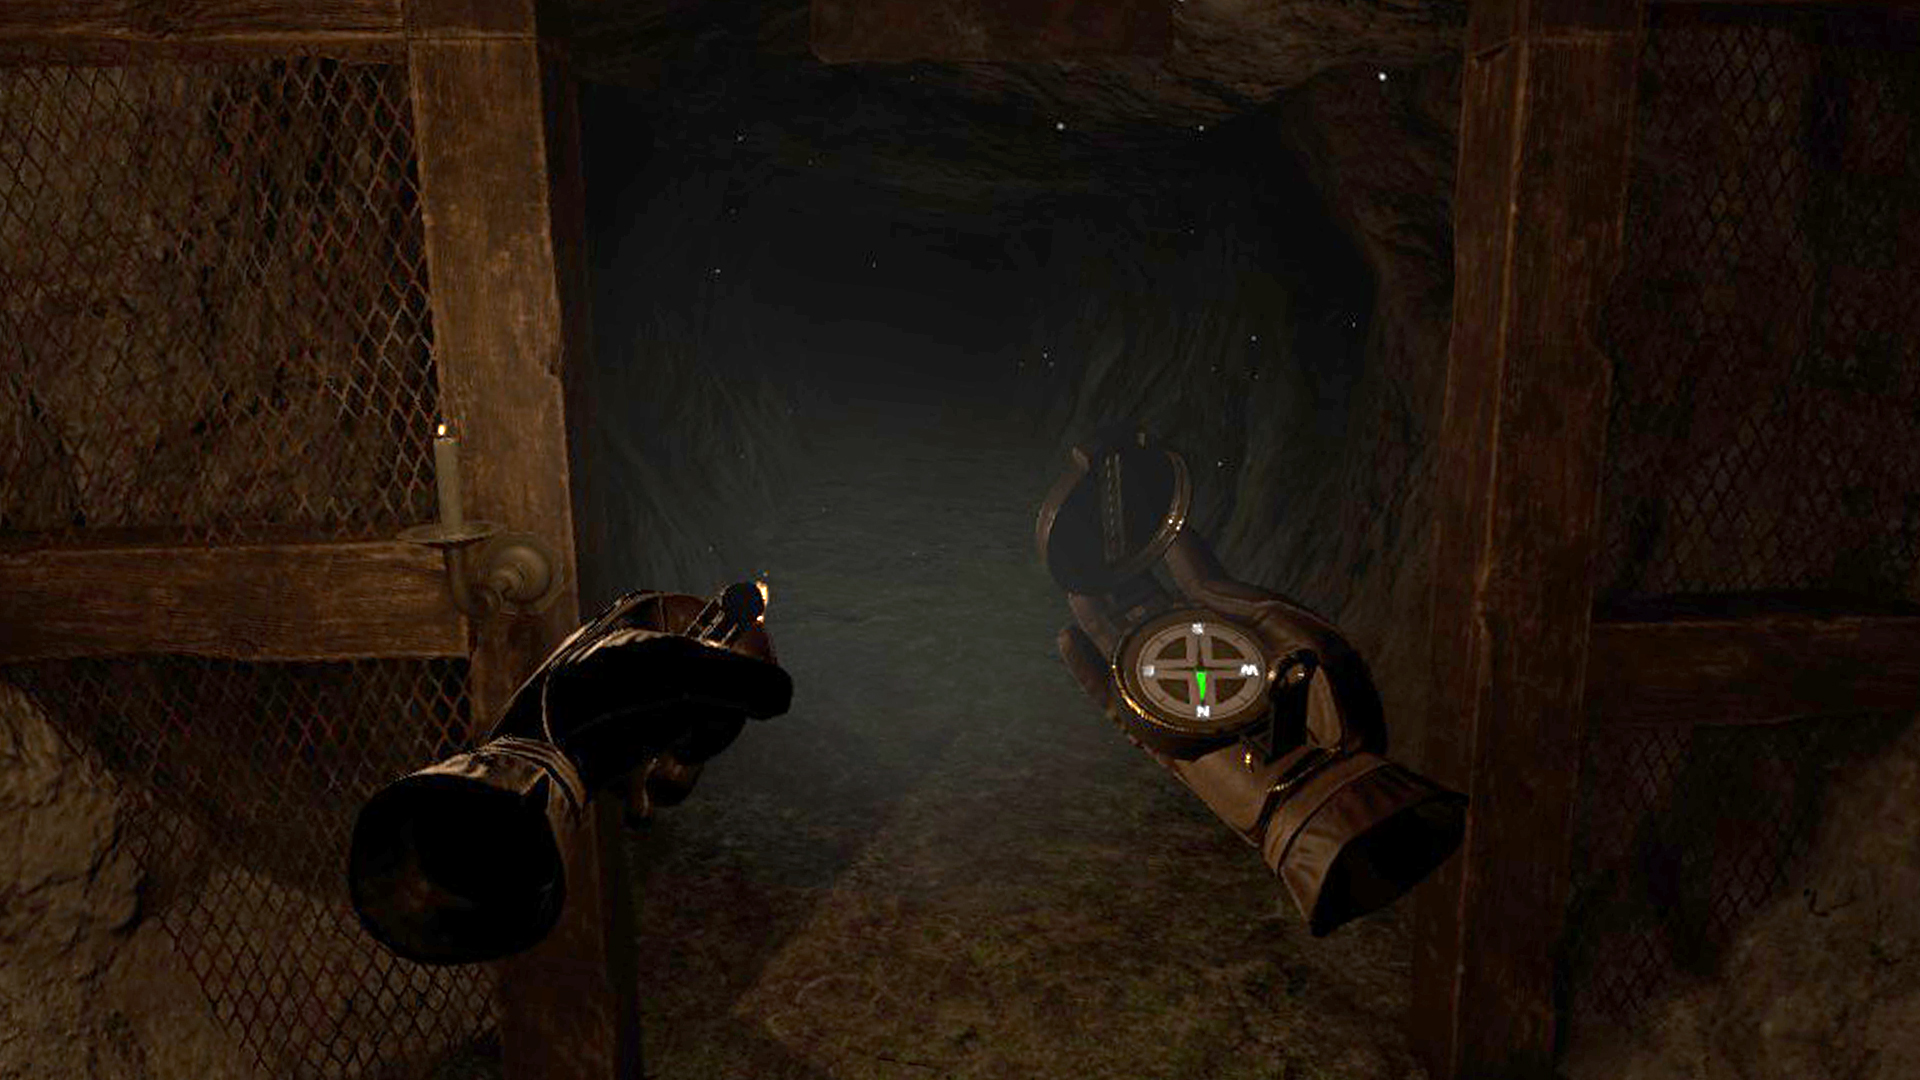 Navigate through the winding tunnels beneath the coal mine.